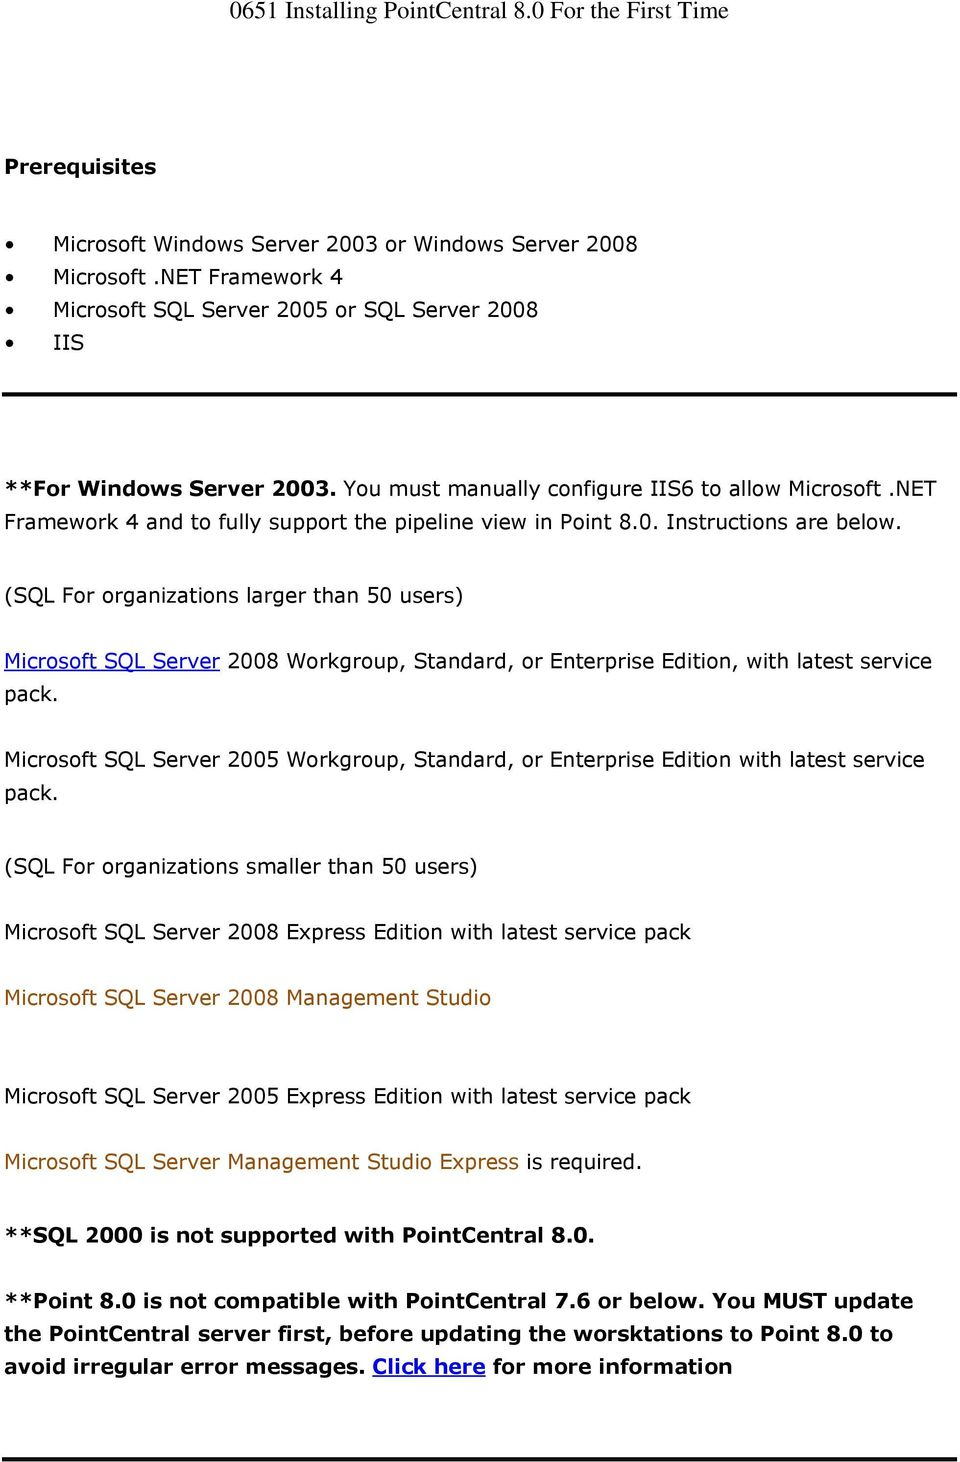 (SQL For organizations larger than 50 users) Microsoft SQL Server 2008 Workgroup, Standard, or Enterprise Edition, with latest service pack.